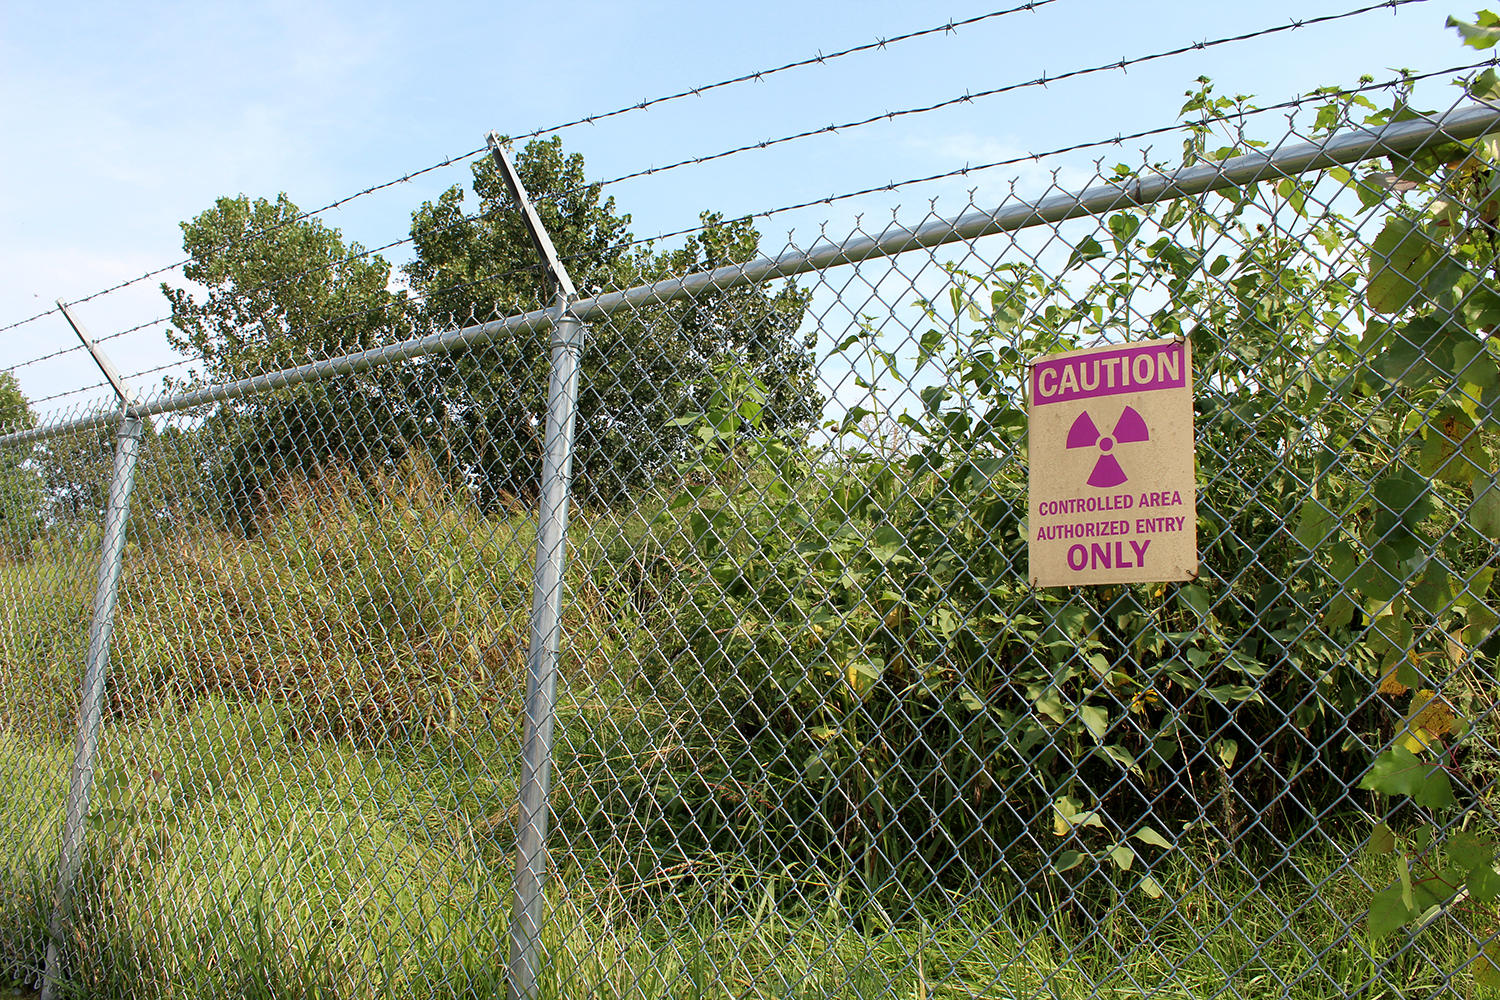 Legacy Nuclear Waste At The West Lake Landfill In Bridgeton Was Thought To  Be Contained Behind This Fence, But A New Study Has Detected Radiation In  Trees